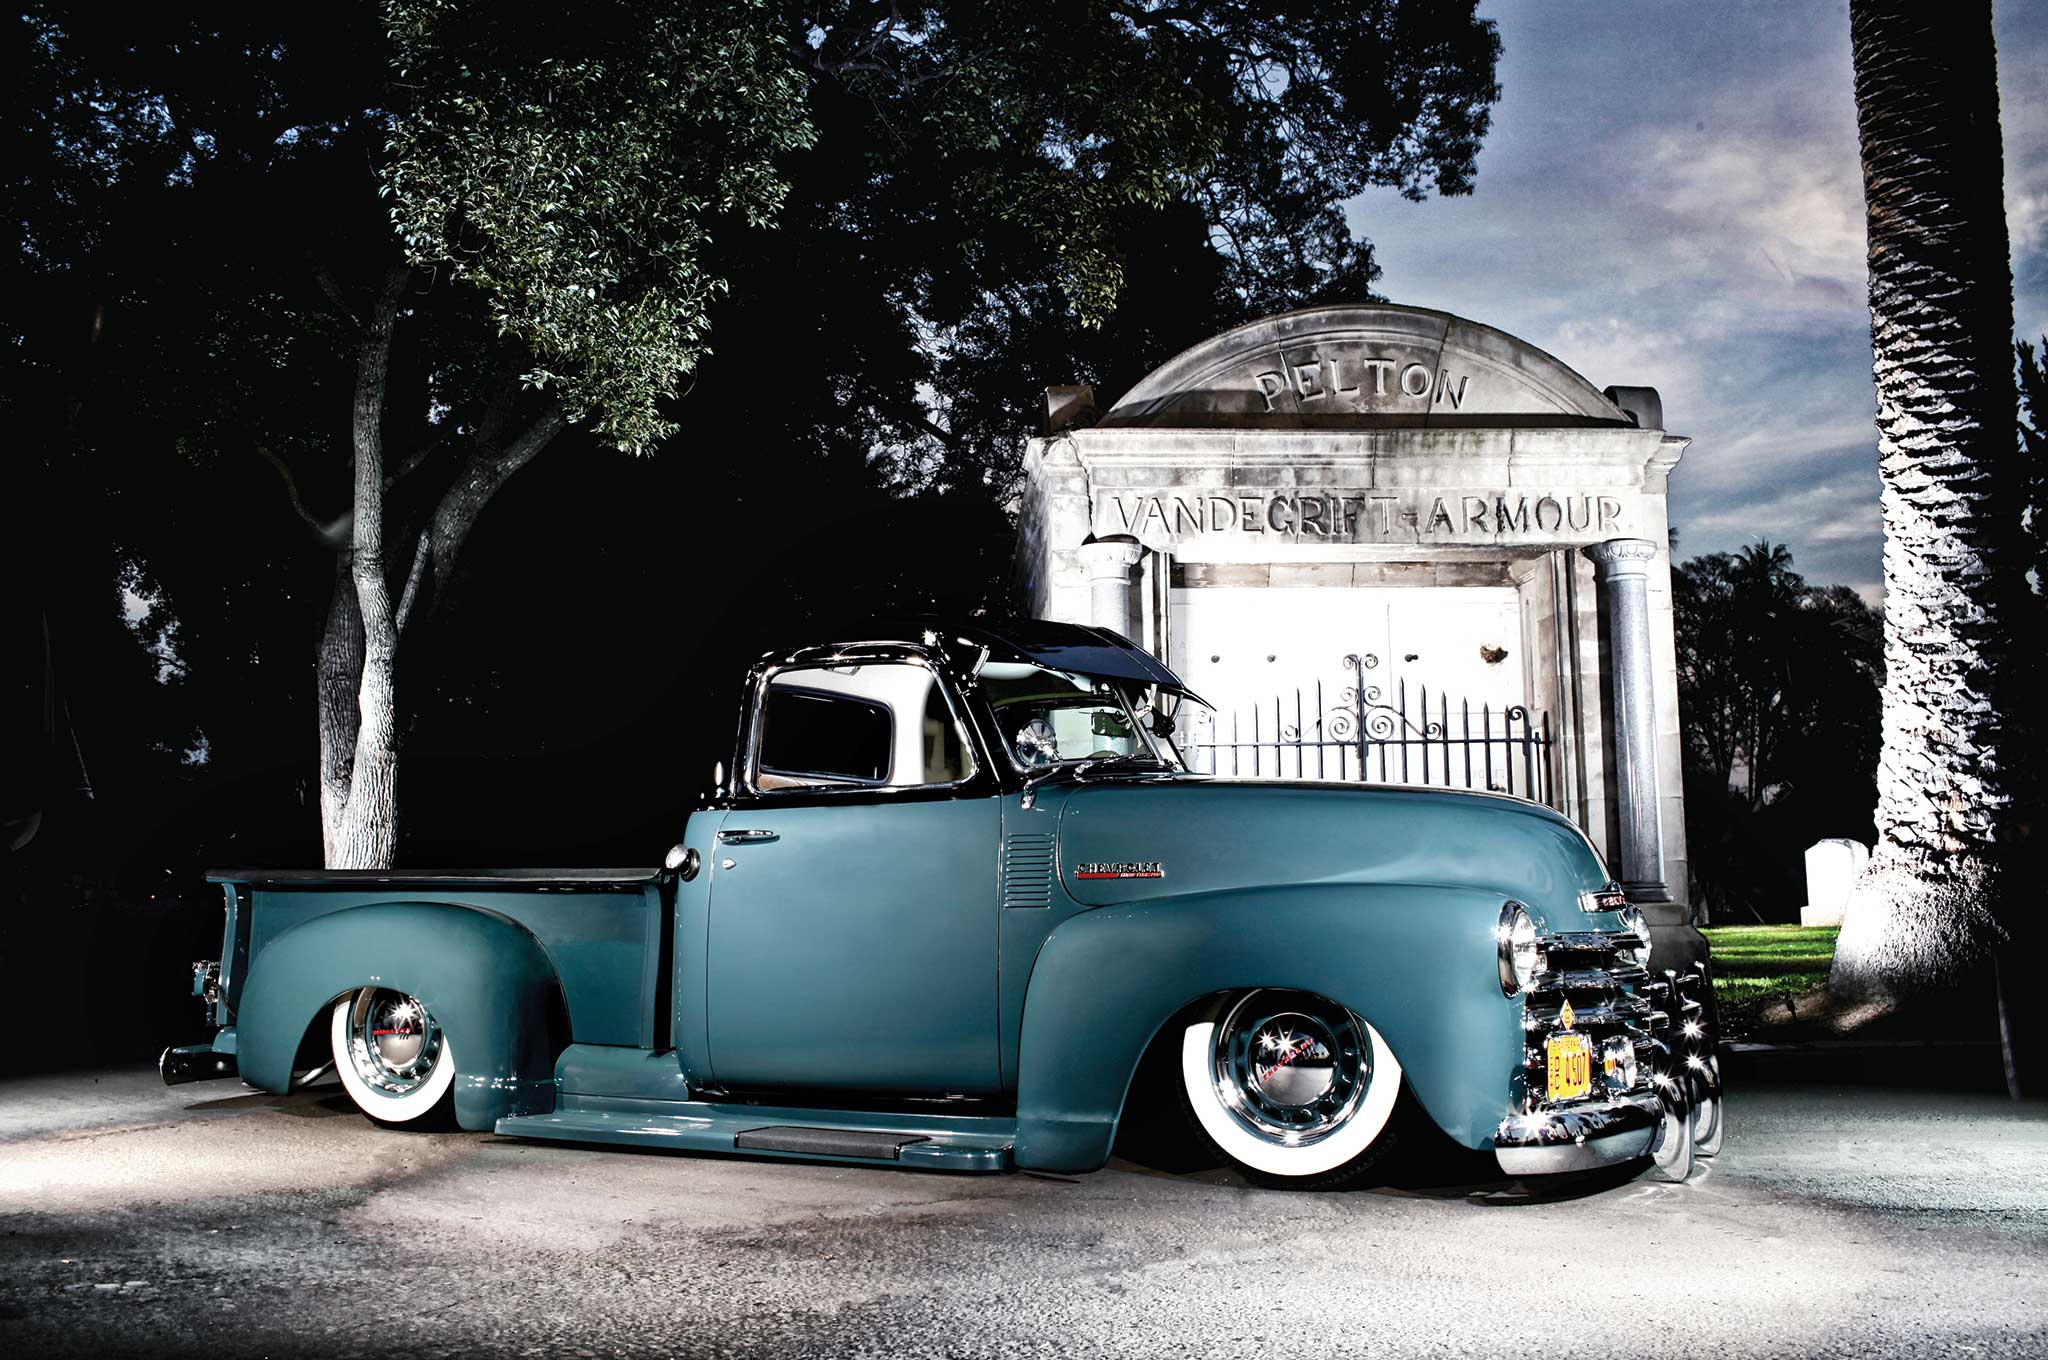 1949 Chevrolet Pickup - Laid to Rest - Lowrider